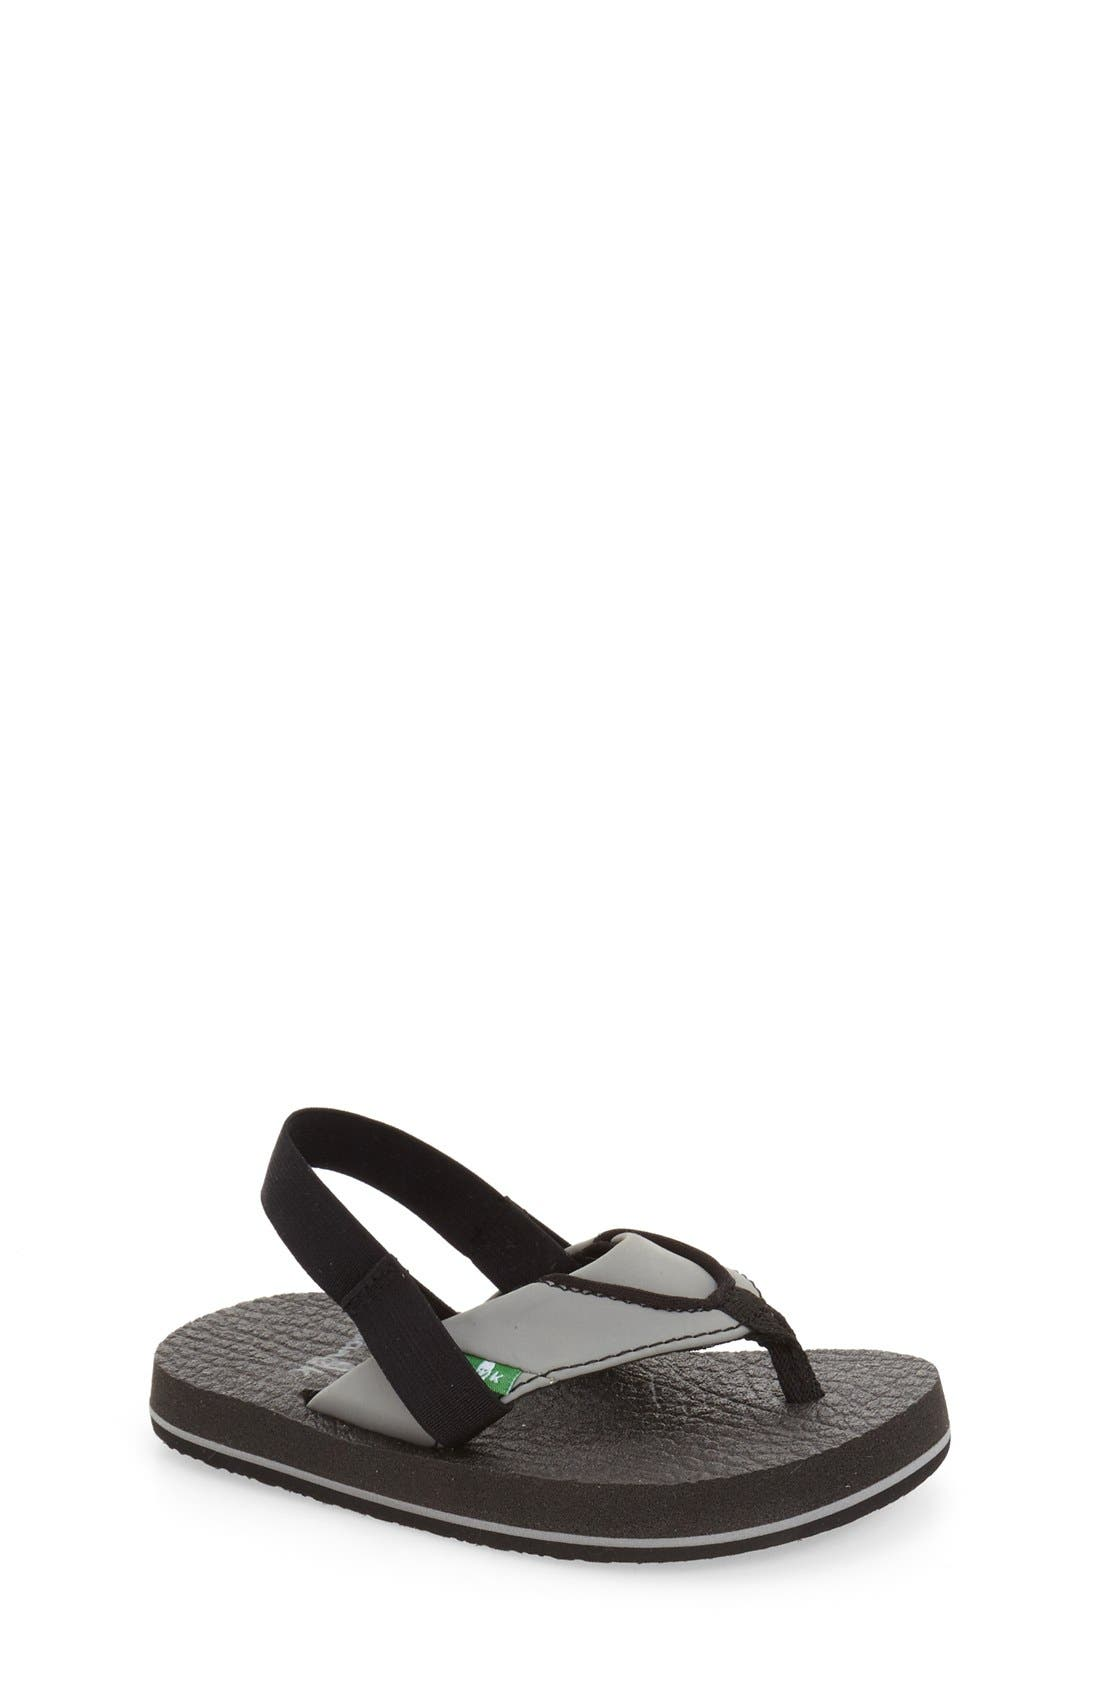 'Root Beer' Sandal,                         Main,                         color, Grey Fabric